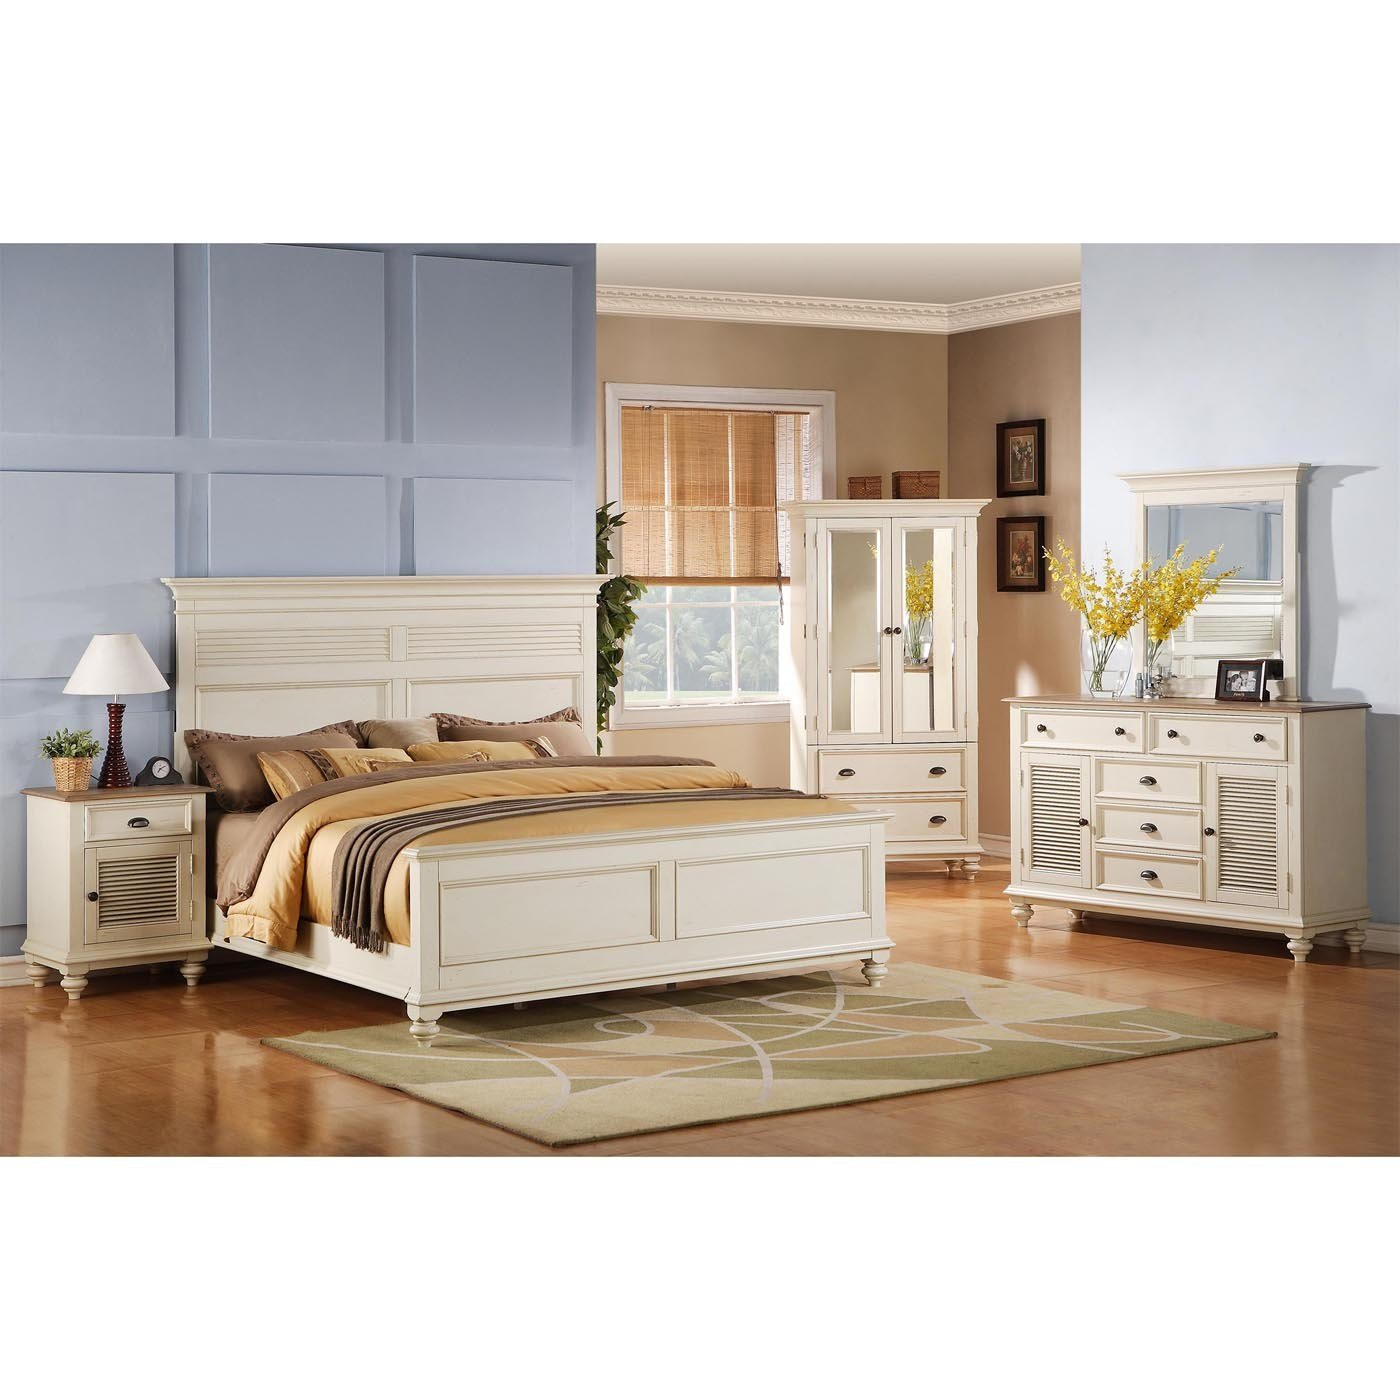 Best Riverside Furniture Coventry Bedroom Set Atg Stores With Pictures